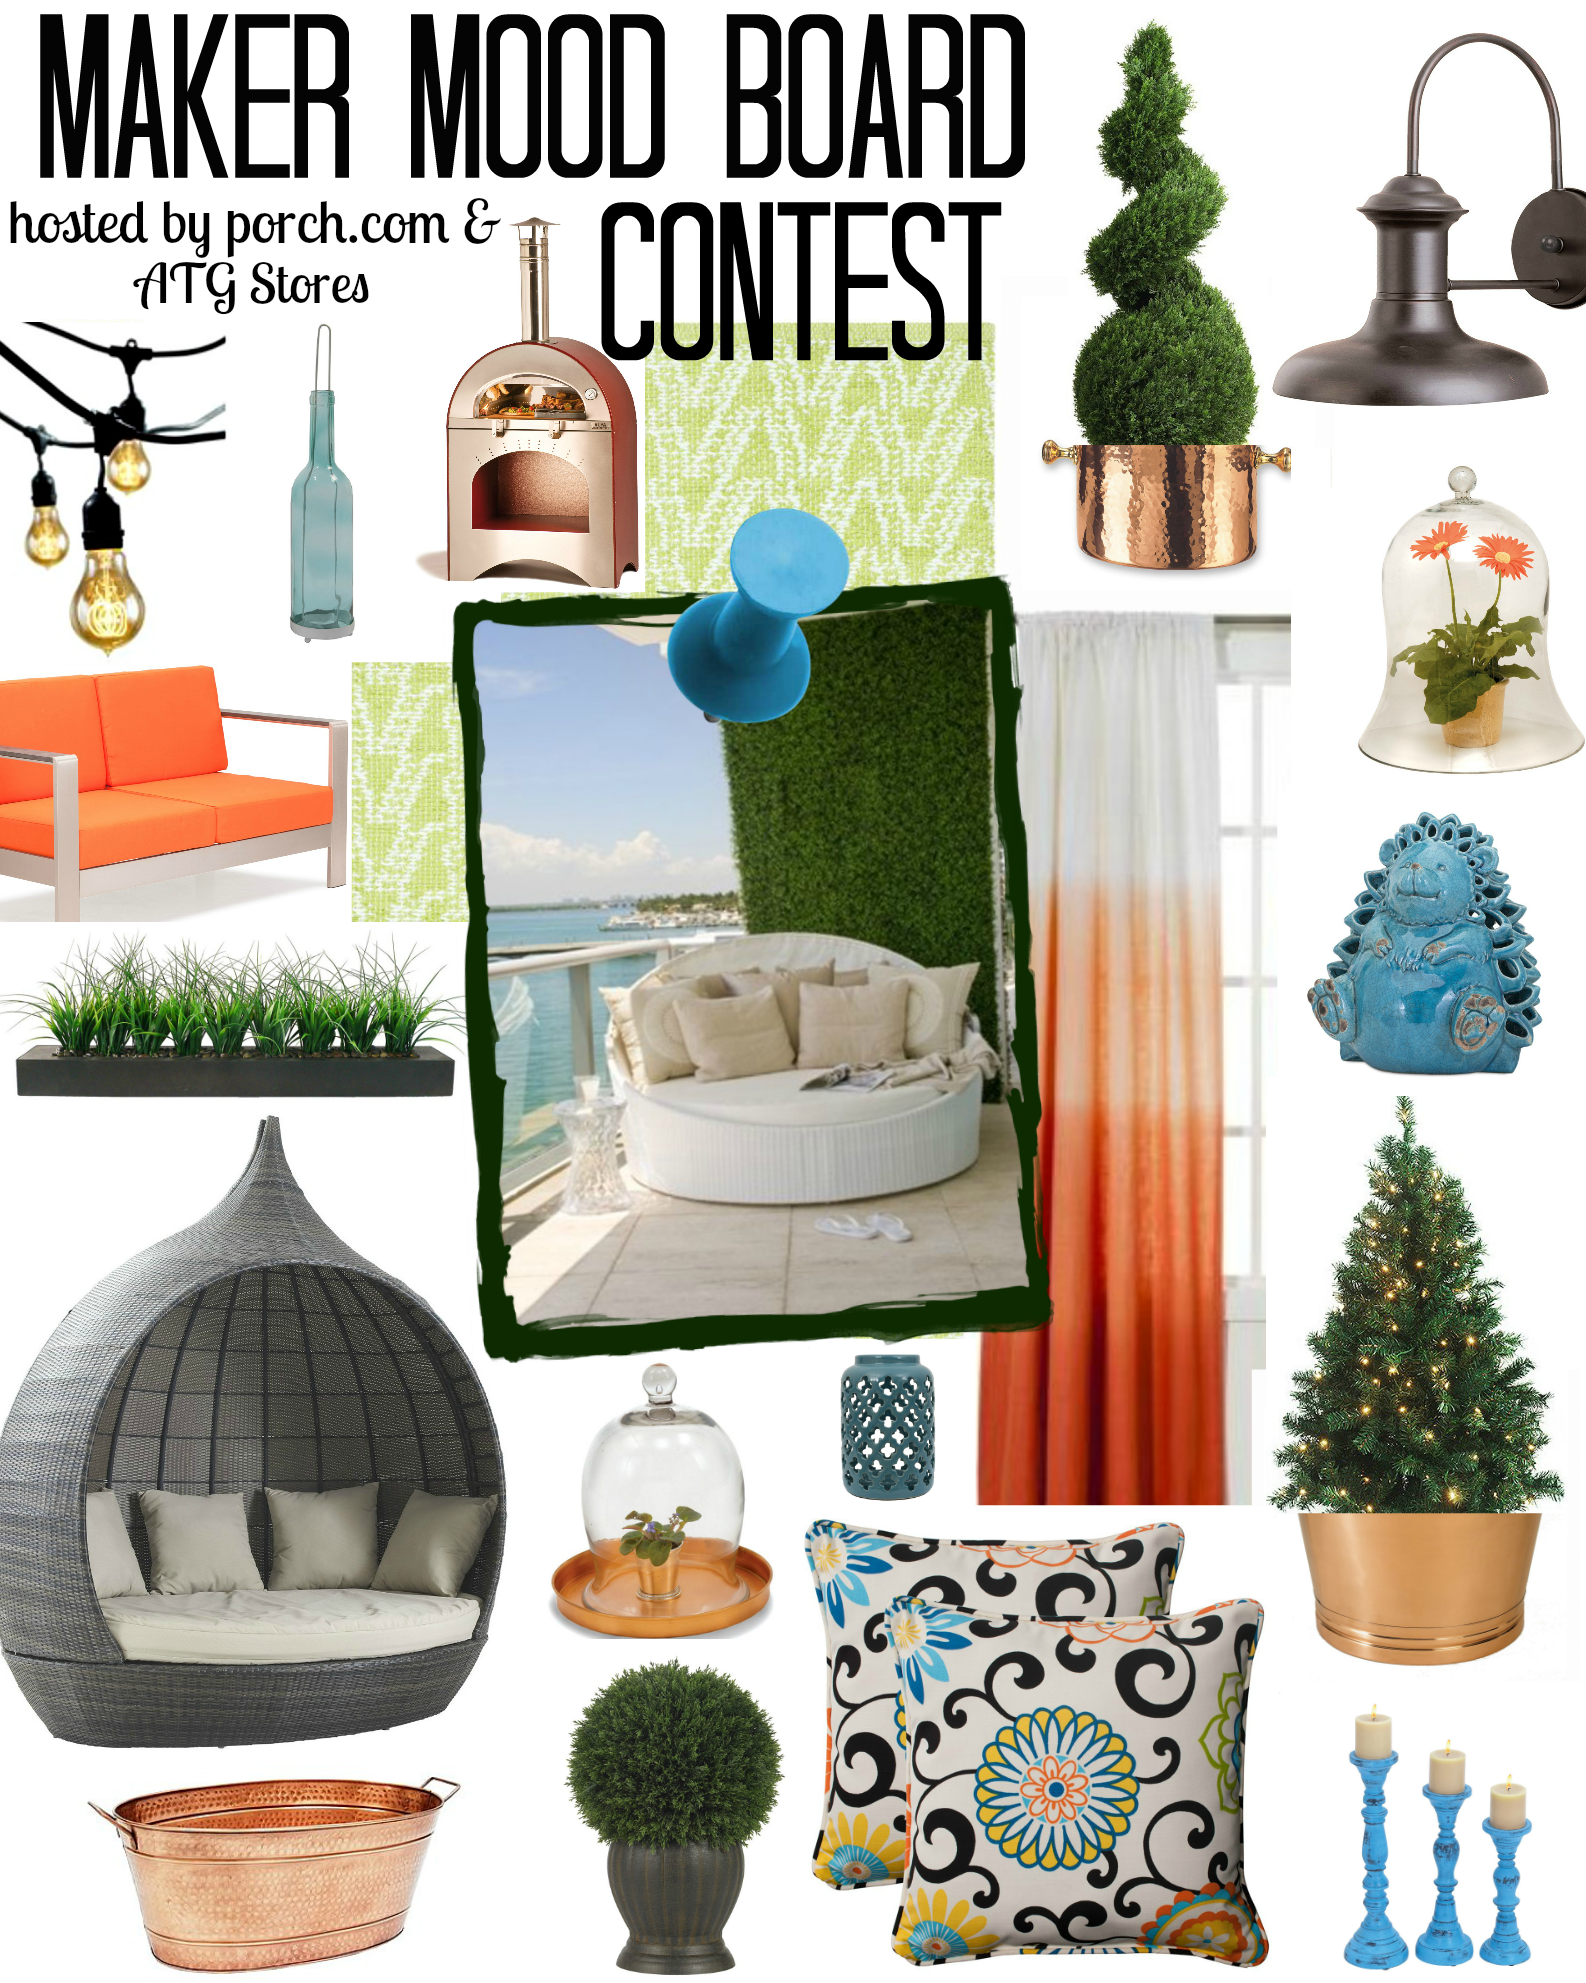 Maker mood board contest